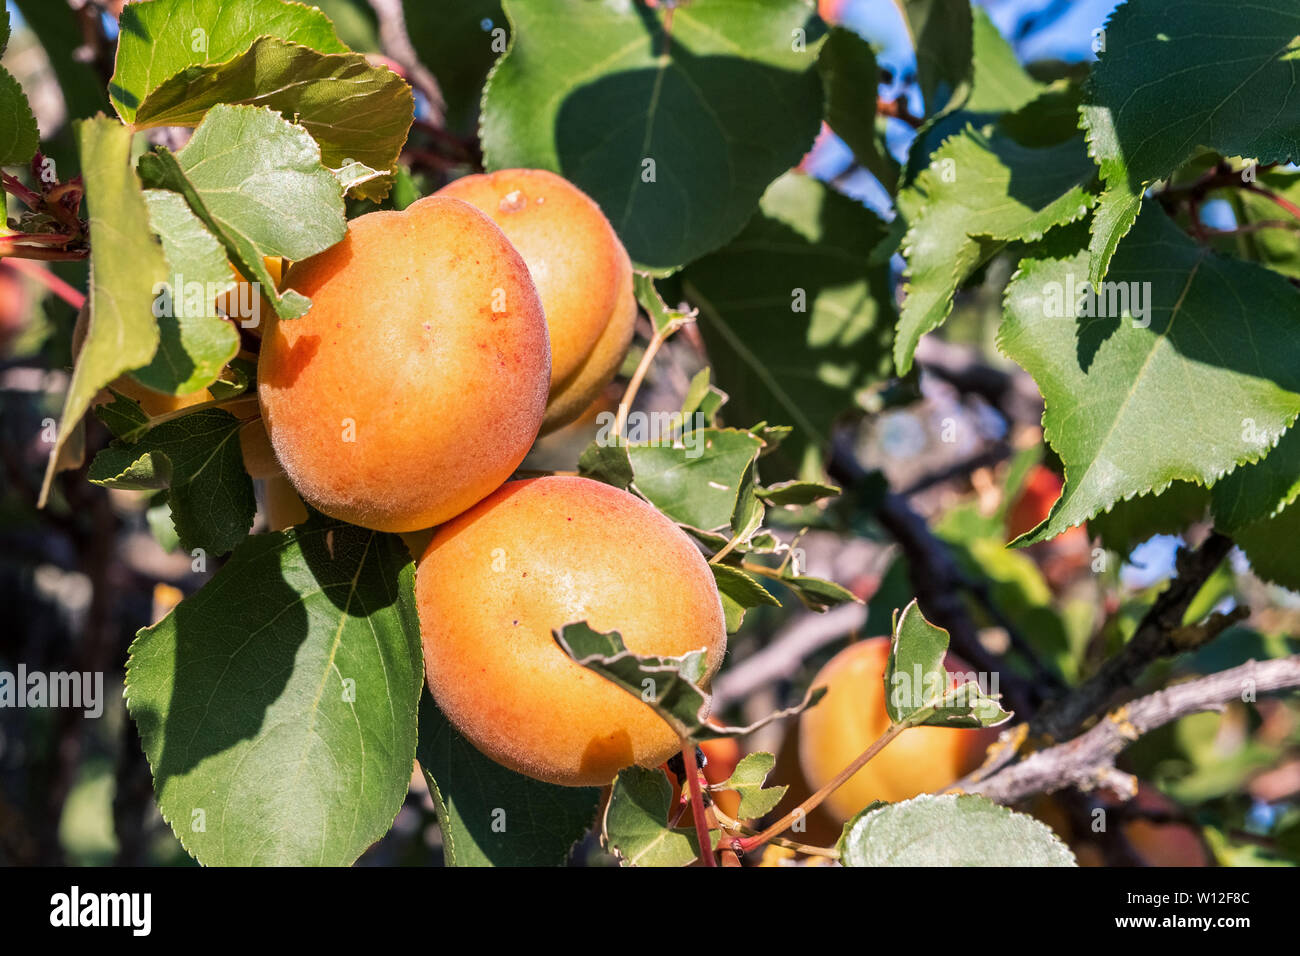 Close up of ripe Blenheim apricots on a branch in an orchard in Santa Clara valley, south San Francisco bay area, California Stock Photo